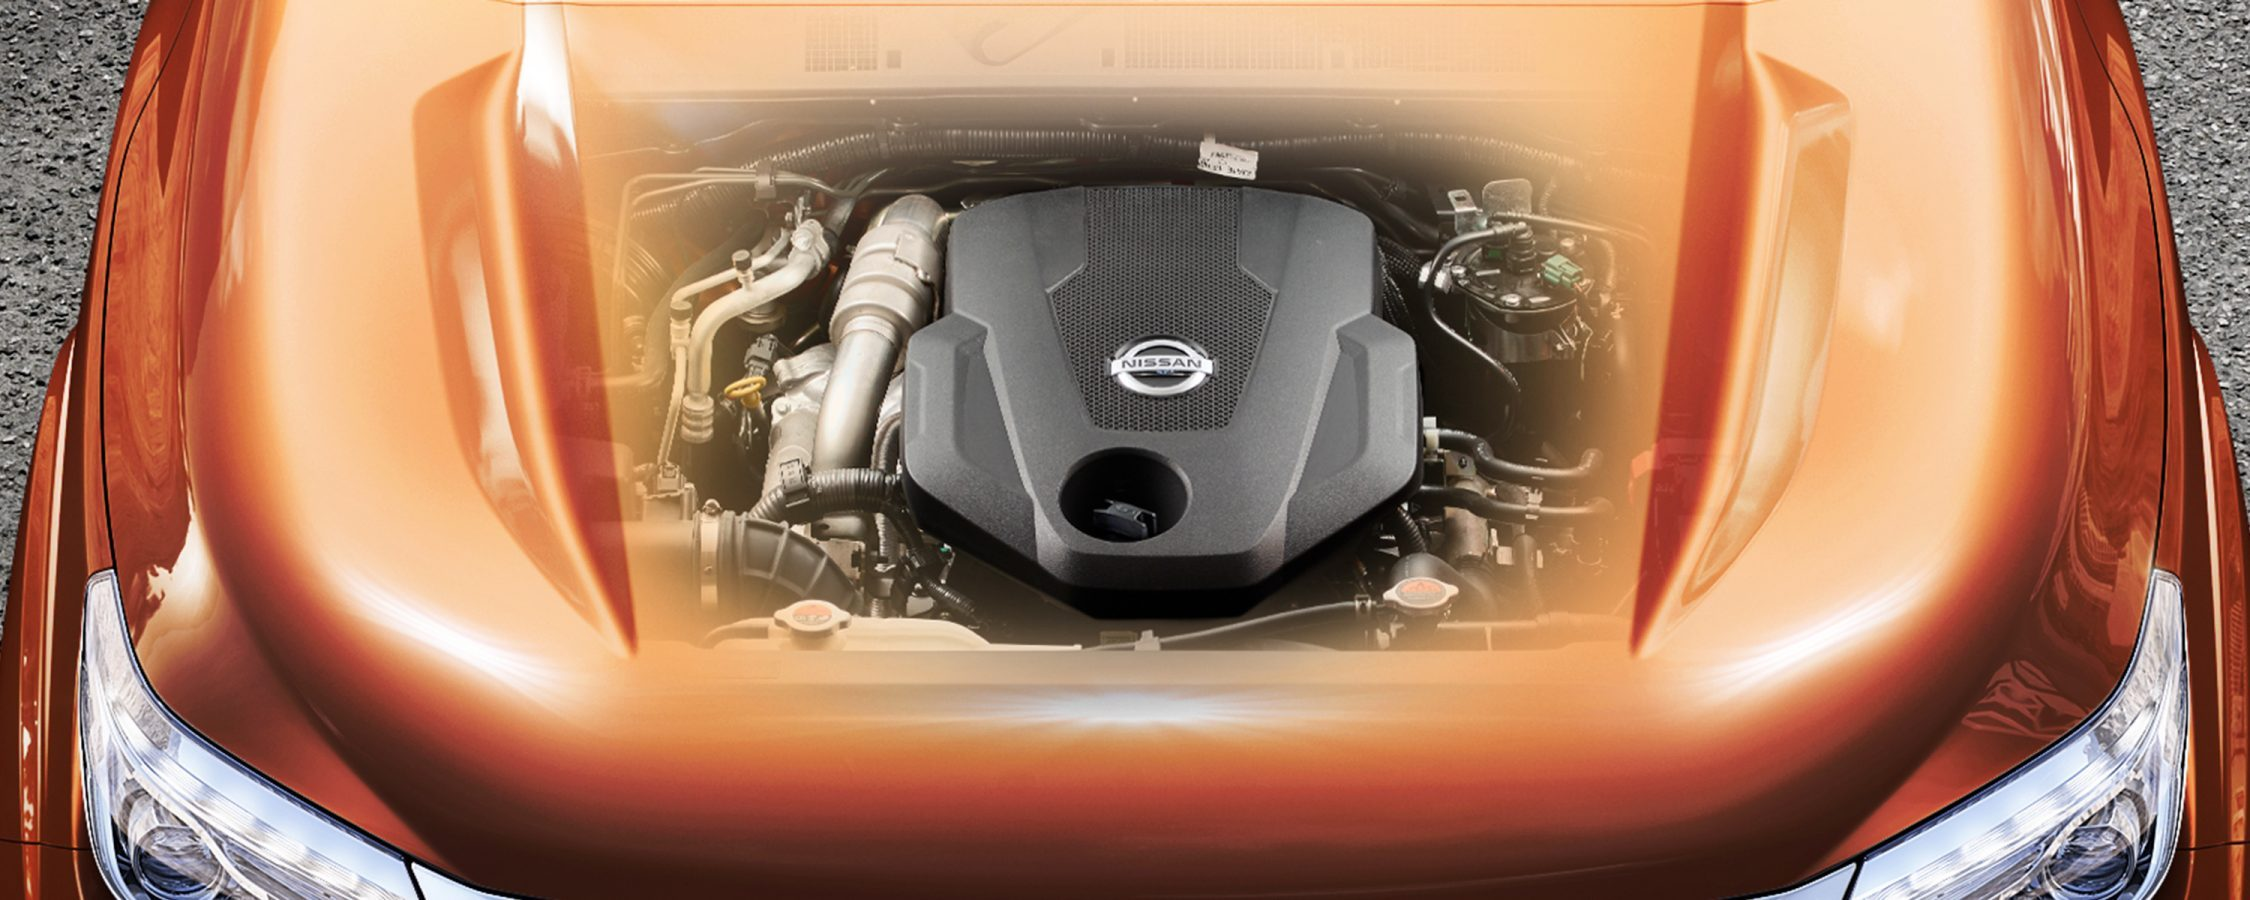 Nissan Navara ghost view of the engine through the hood